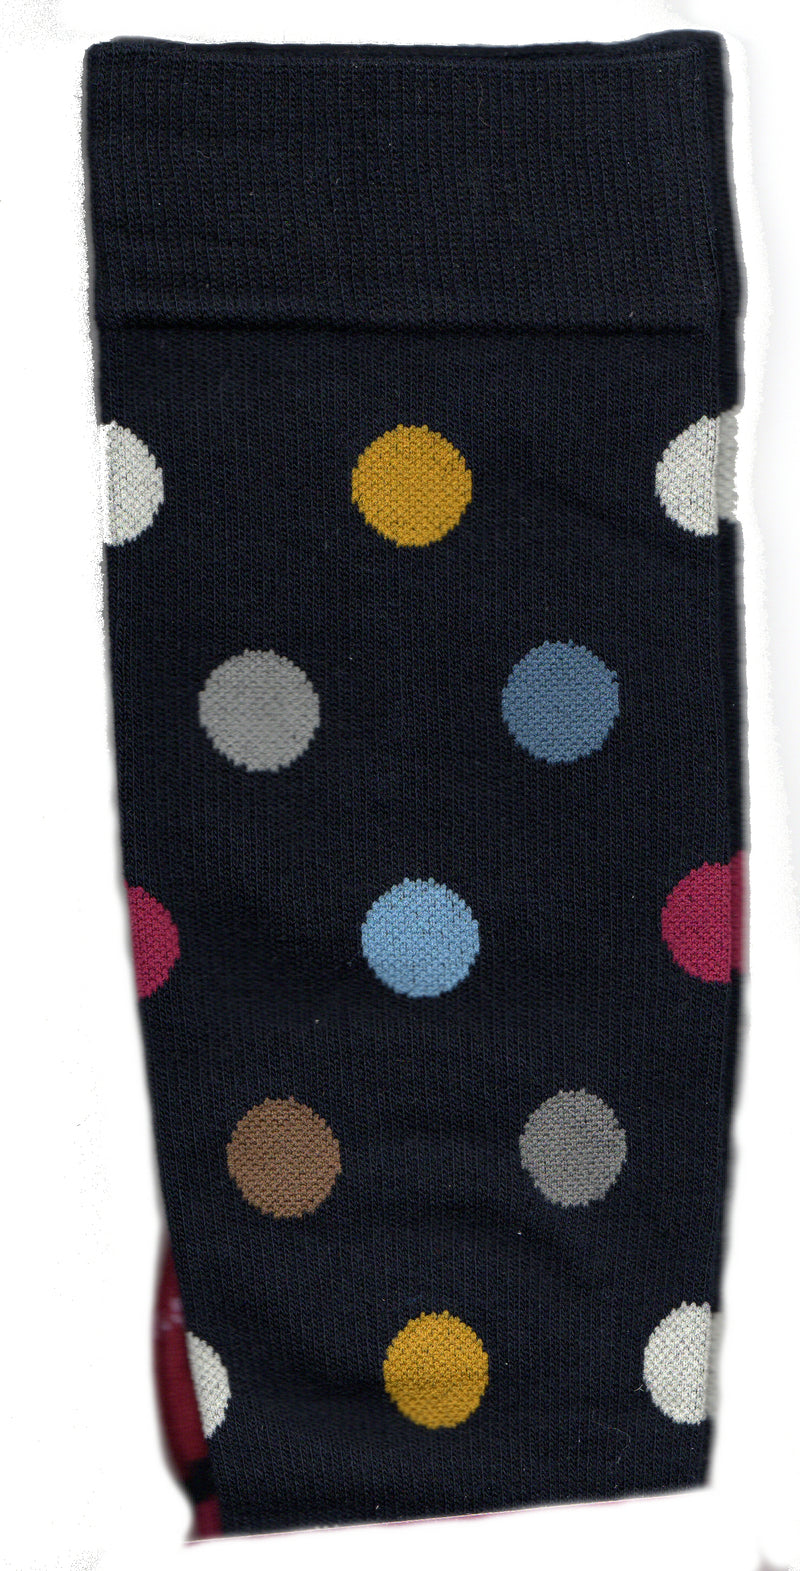 Dr Motion Womens Everyday Compression Dots Socks start on a background of Navy with Merlot Heels and Toes and a 3/4 inch Merlot Dot to start with. Other colored Dots are Light, Medium and Dark Grey, Light and Steel Blue, Brown and Goldenrod.